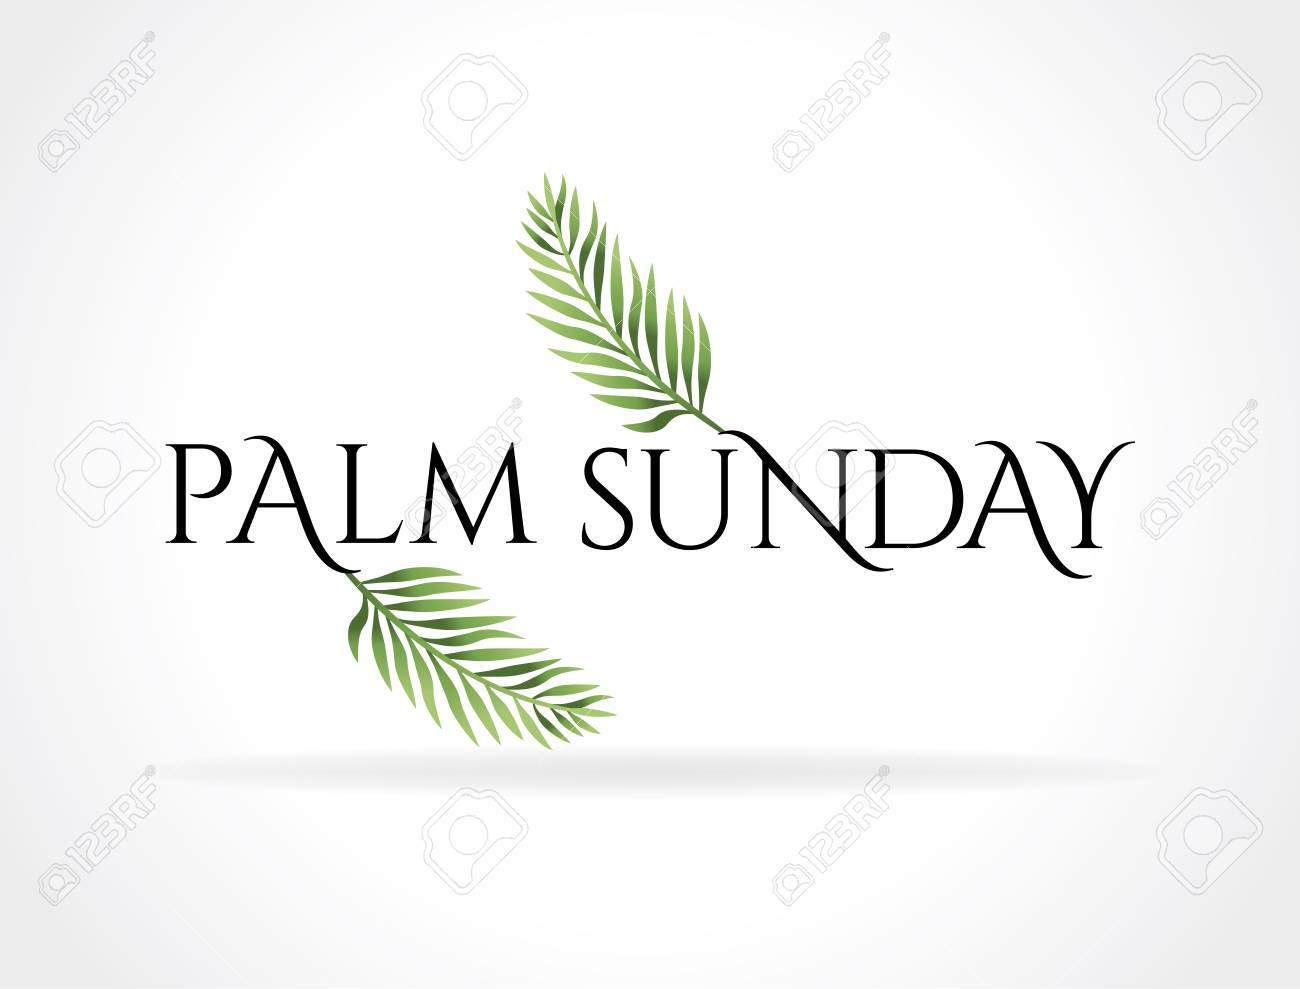 A Christian Palm Sunday religious holiday with palm branches and leaves illustration. Vector EPS 10 available. - 93118963